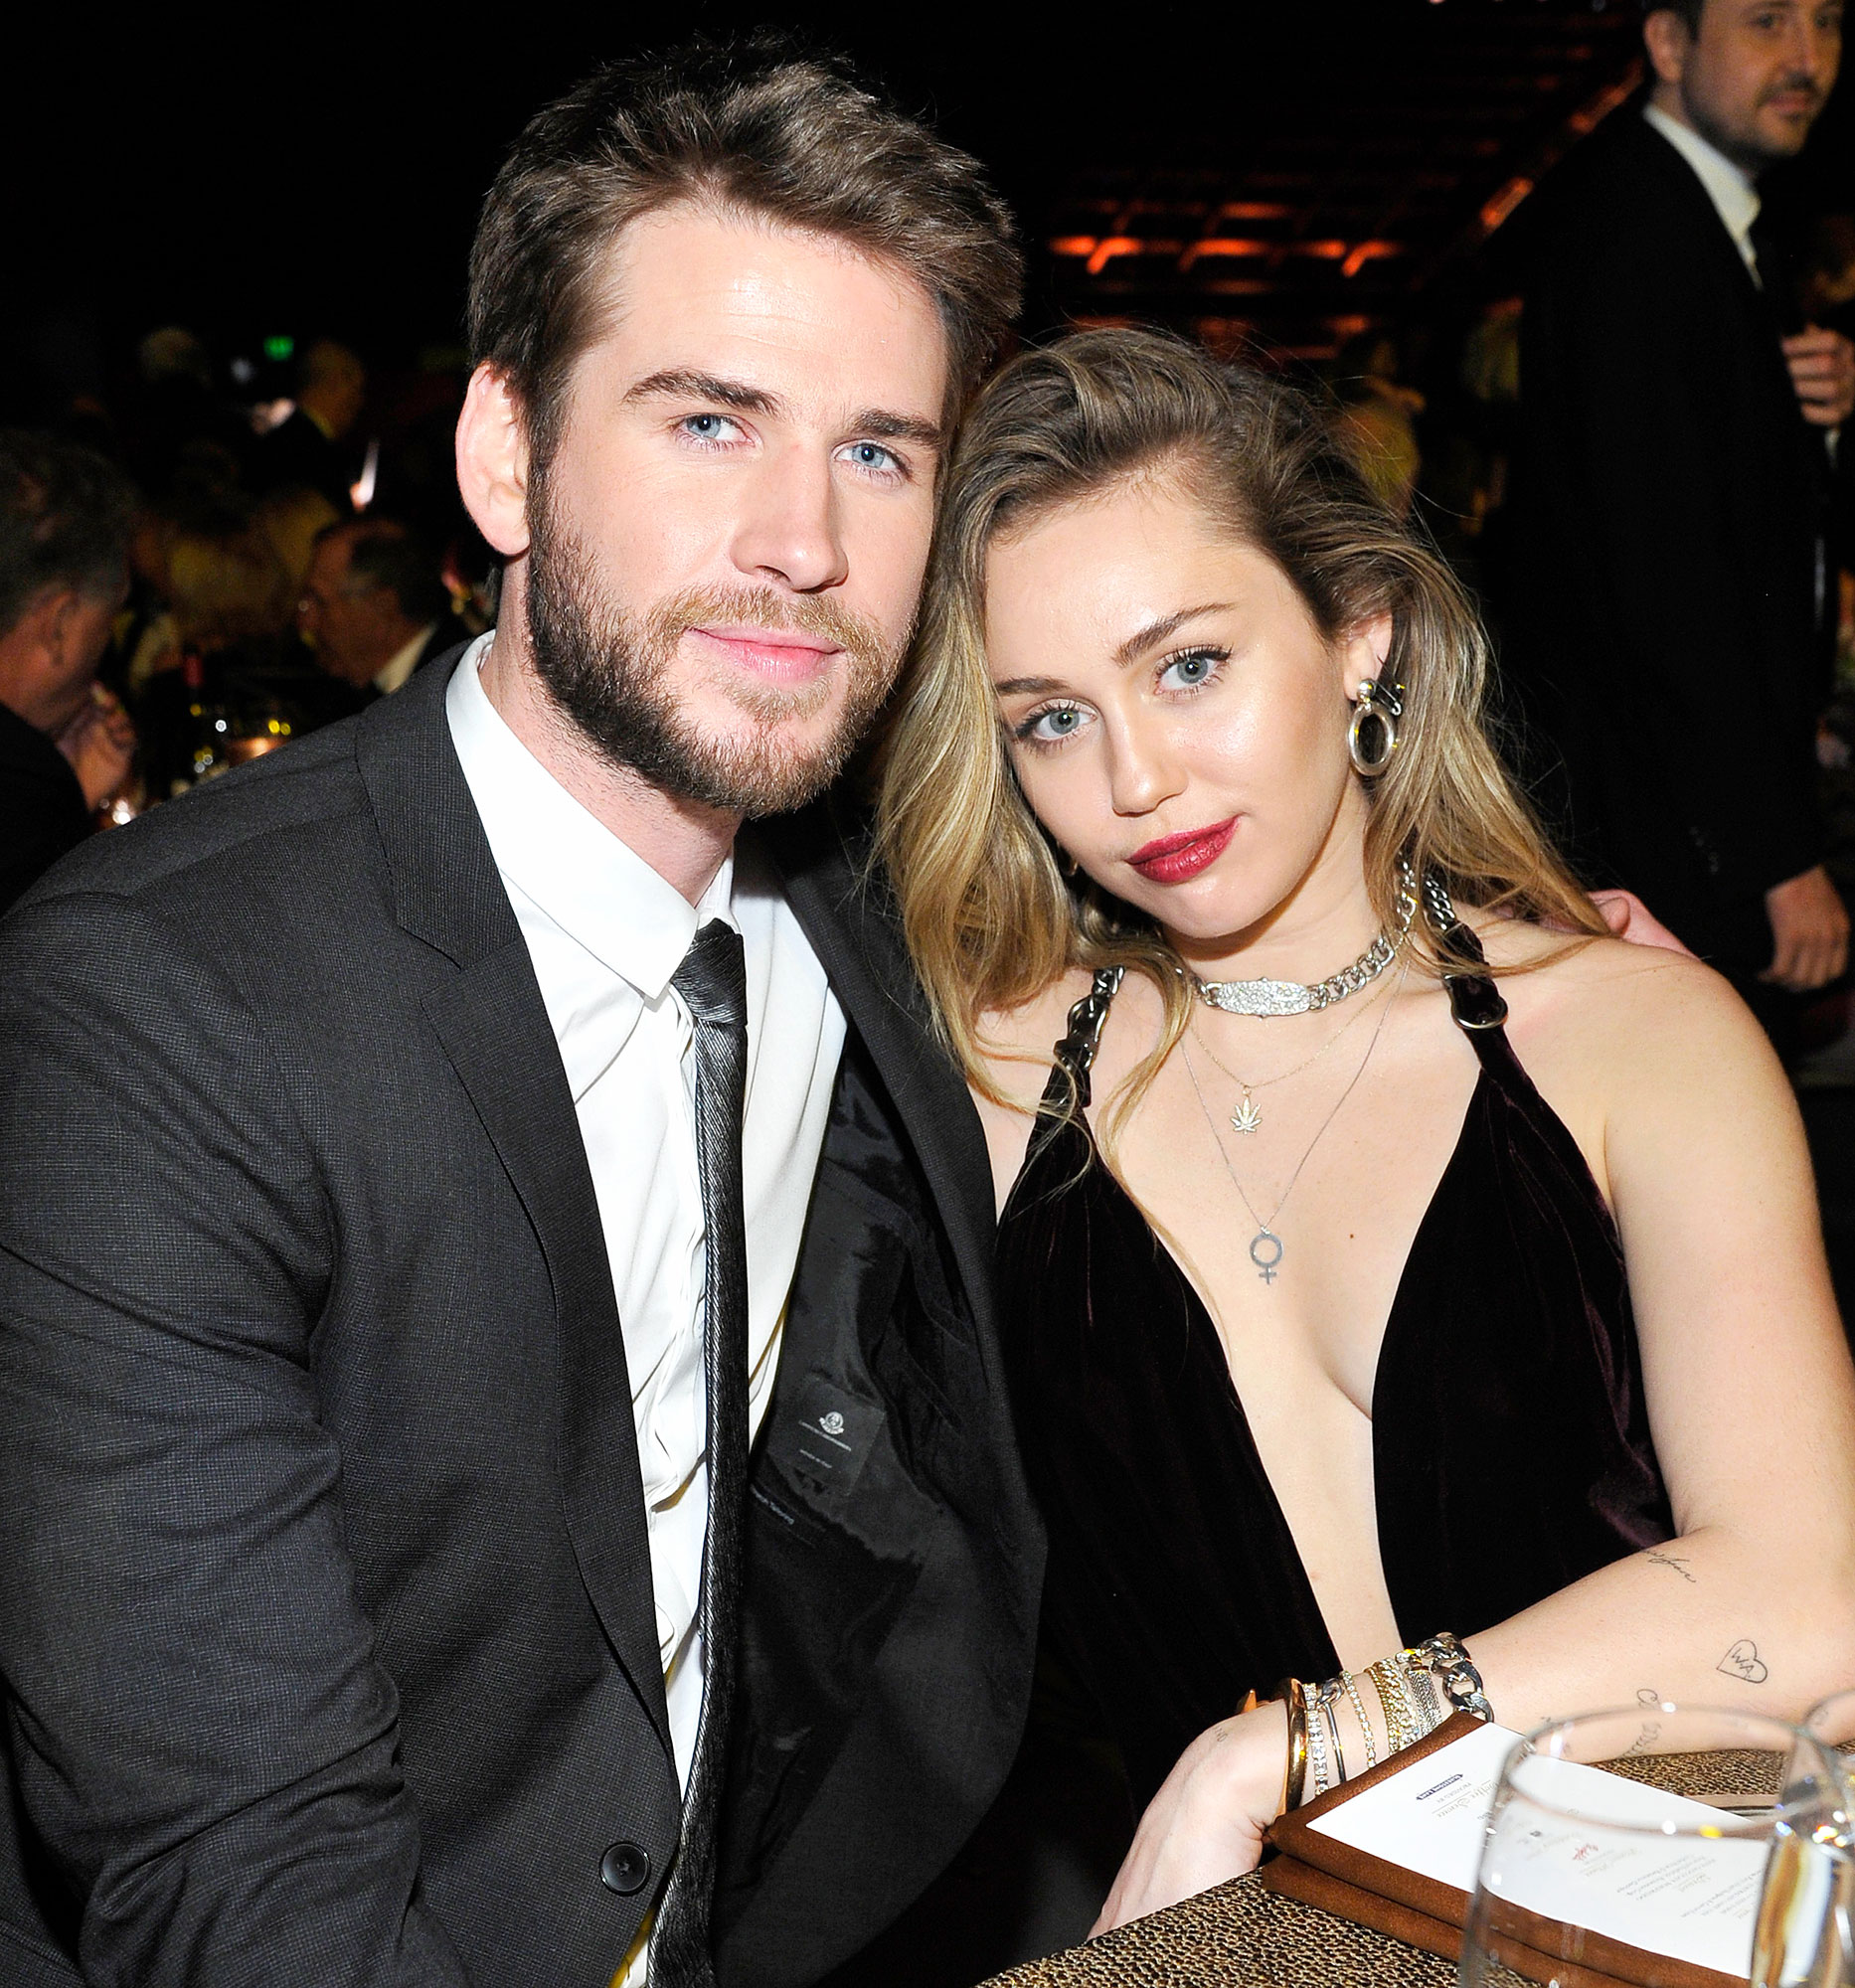 Miley Cyrus Not Sure Liam Hemsworth Marriage Without Malibu Fires Vanity Fair